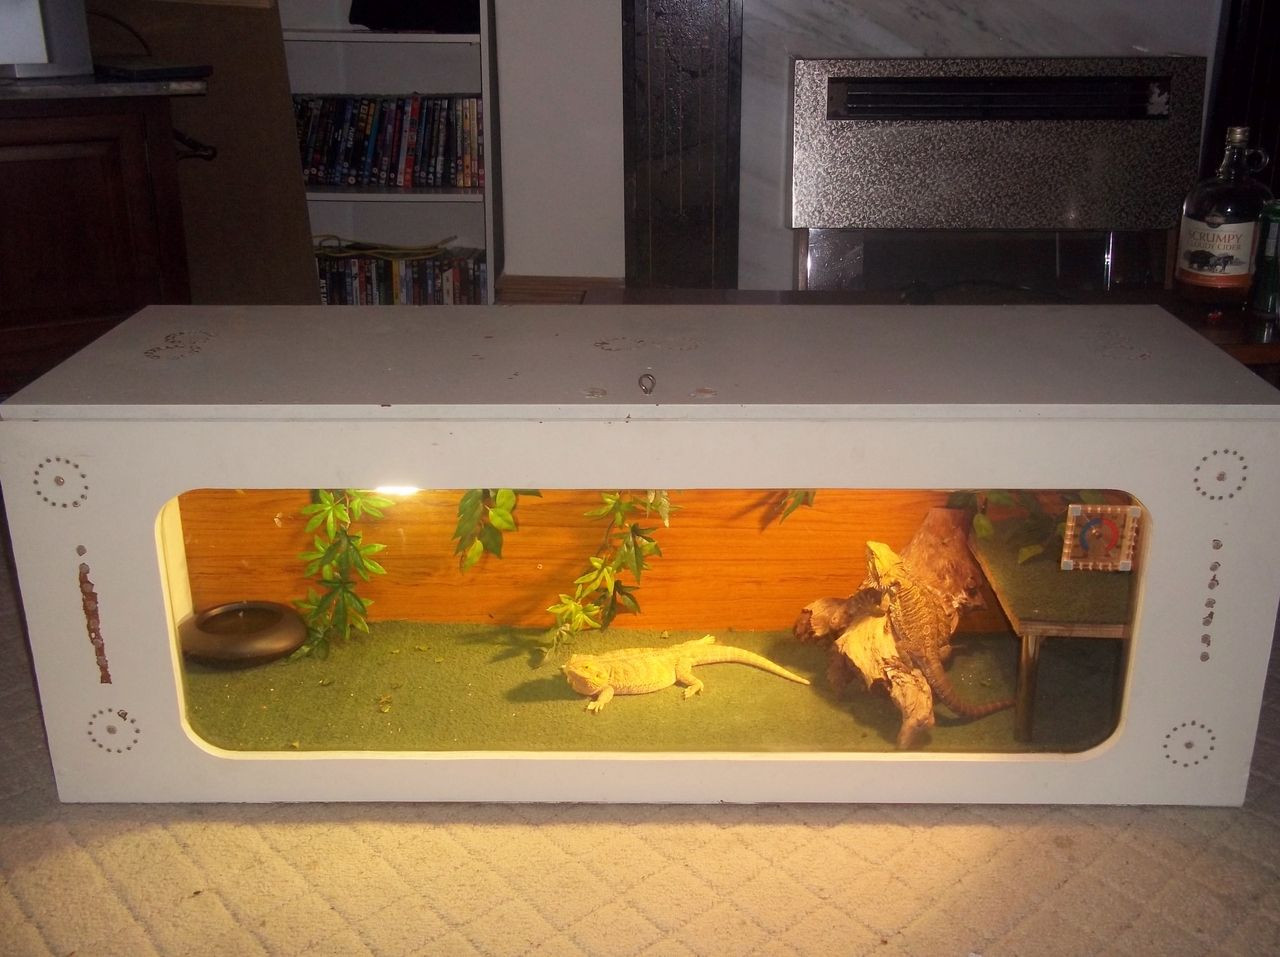 Best ideas about DIY Bearded Dragon Cage . Save or Pin Diy bearded dragon enclosure Now.